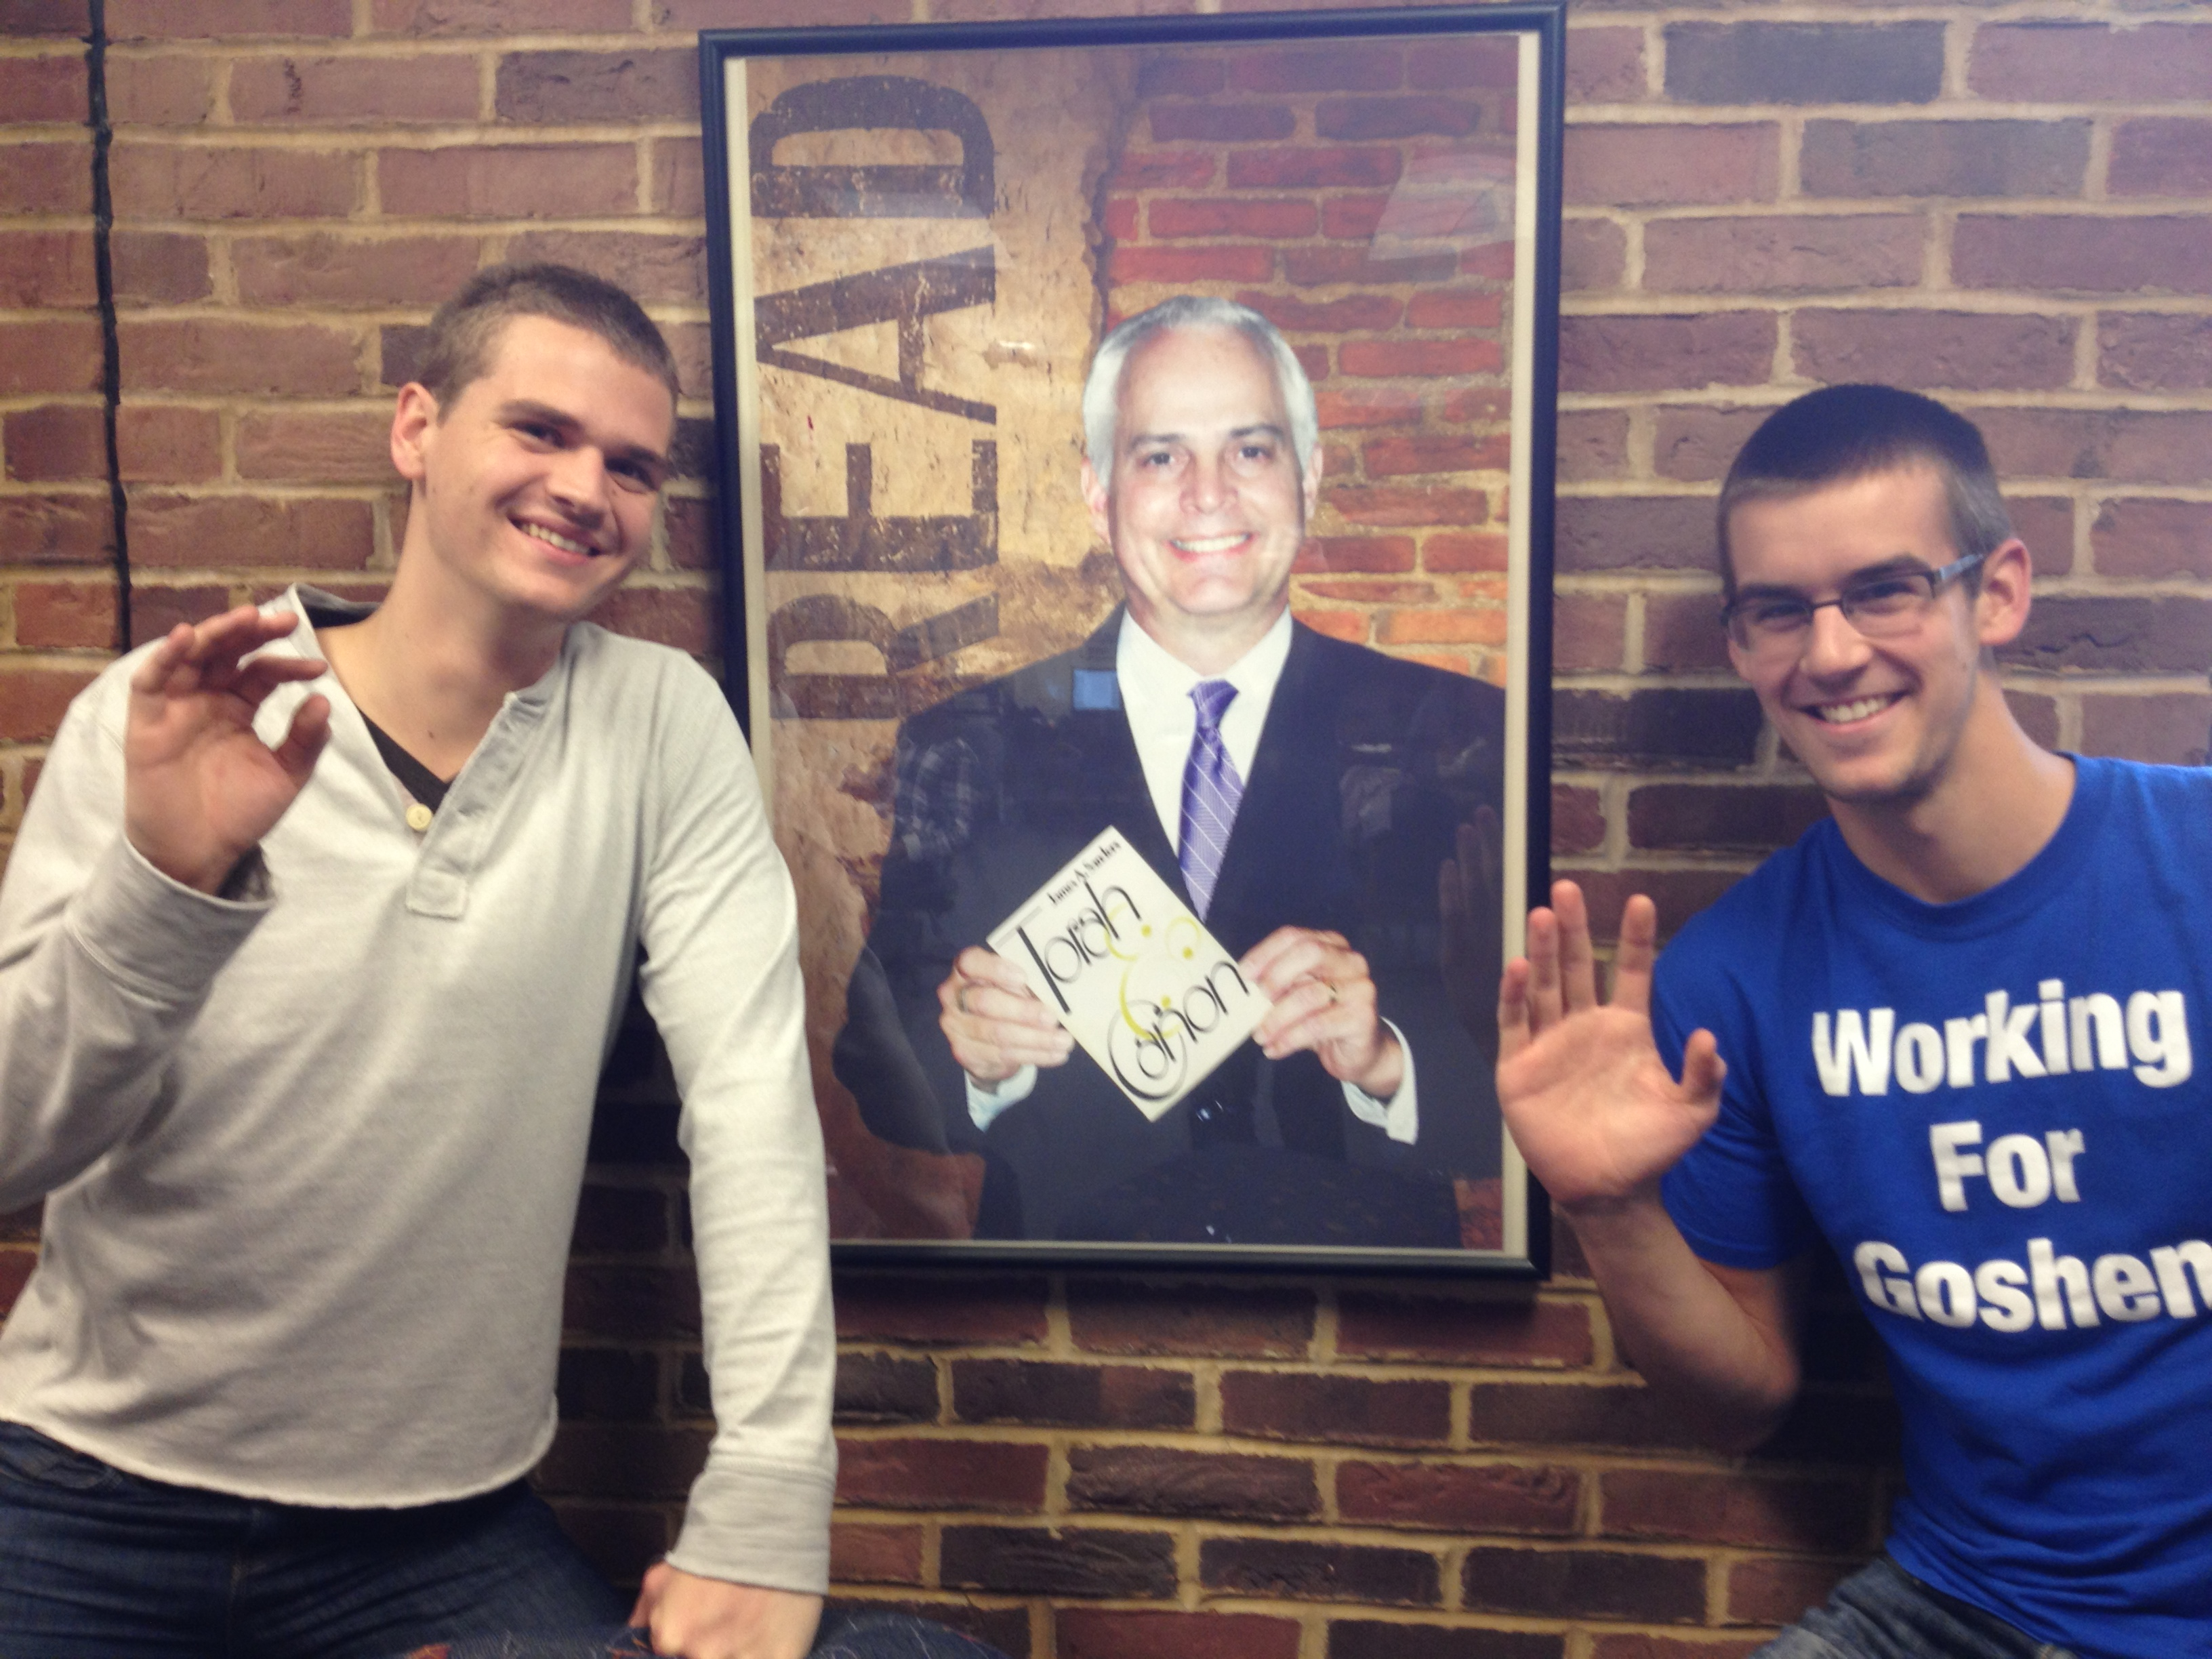 Brian O'Leary and John Miller pose with a picture of President Jim Brenneman